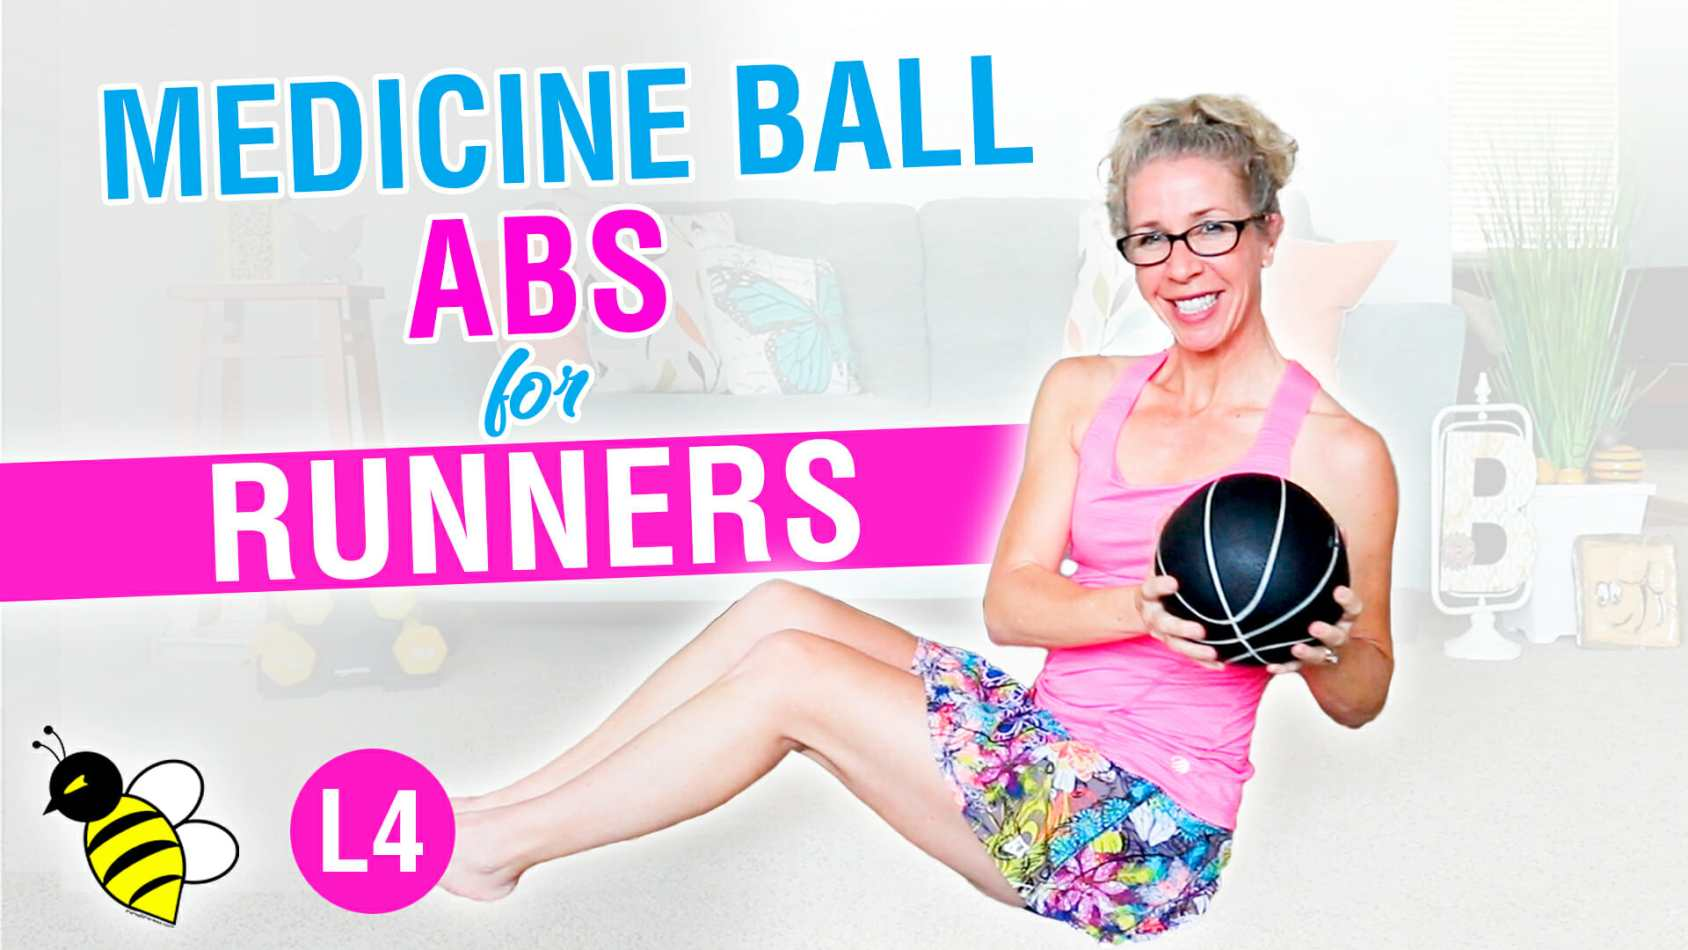 PR STRONG 5 minute medicine ball ABS workout for RUNNERS